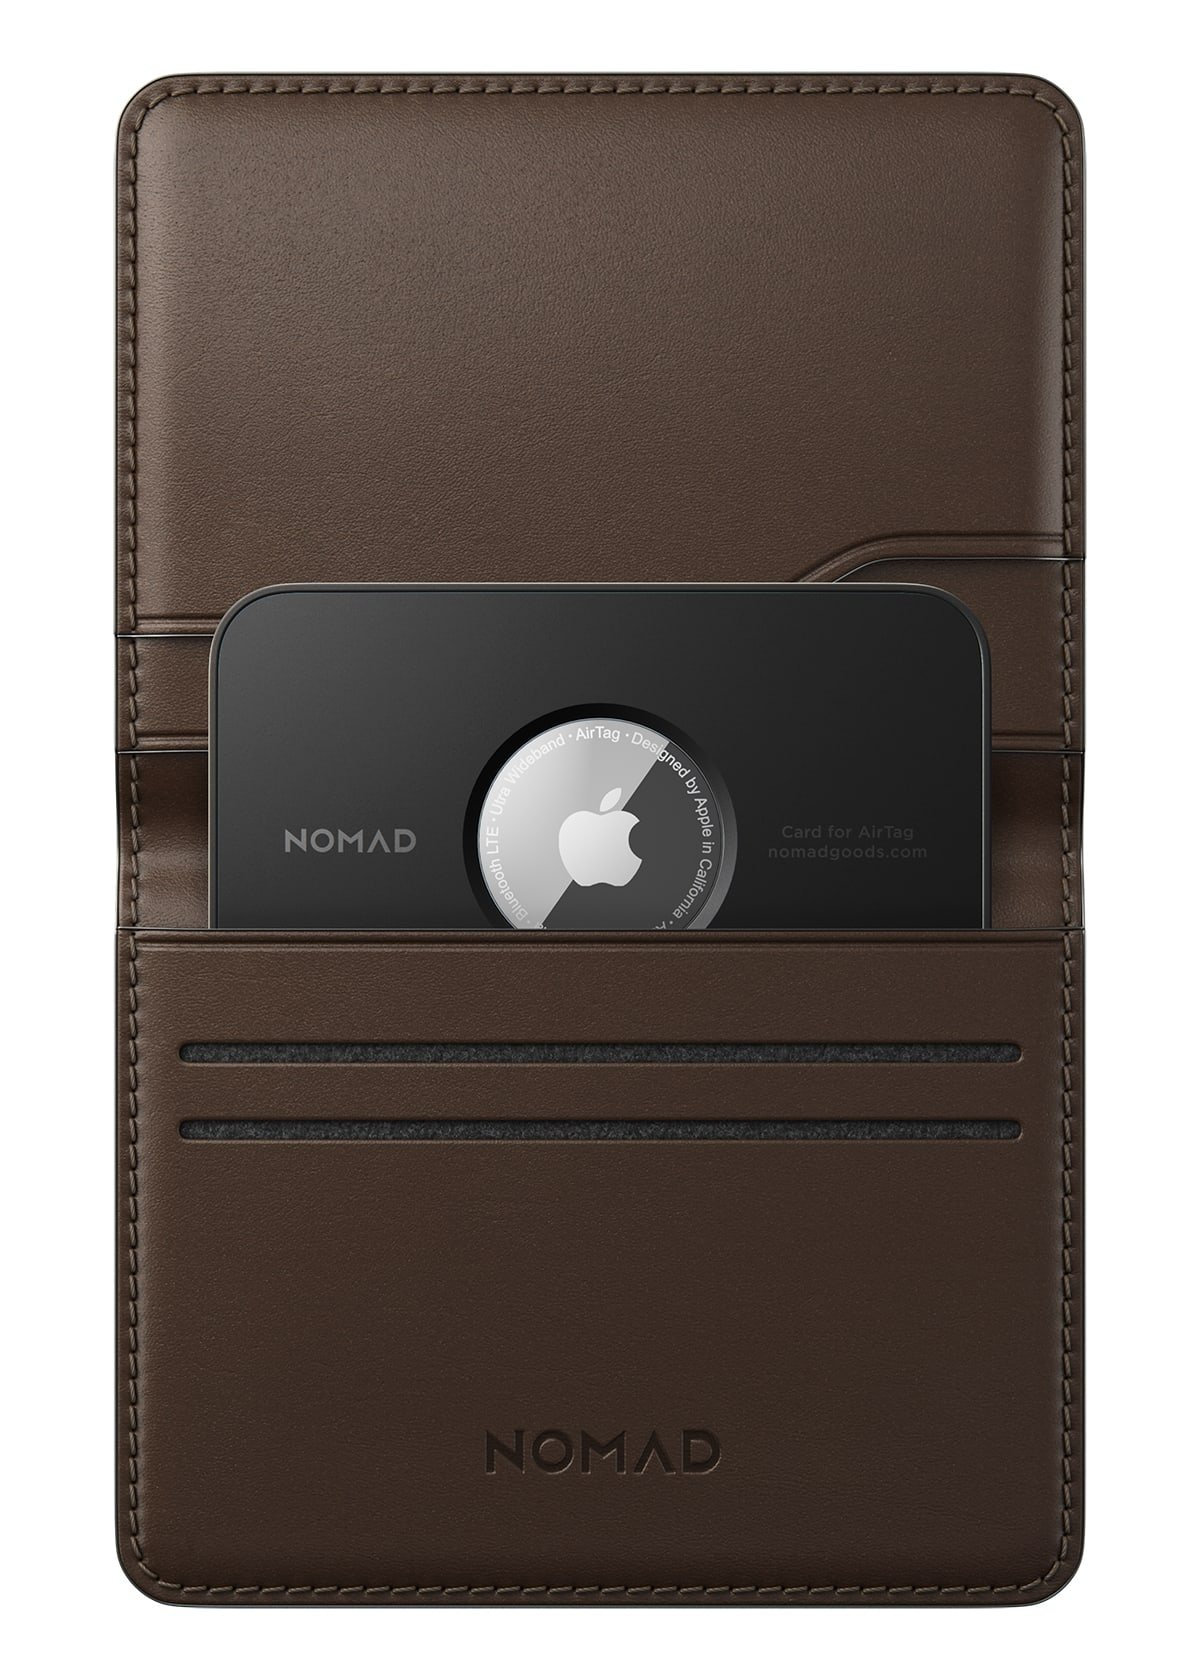 Card for AirTag inserted into Nomad's wallet